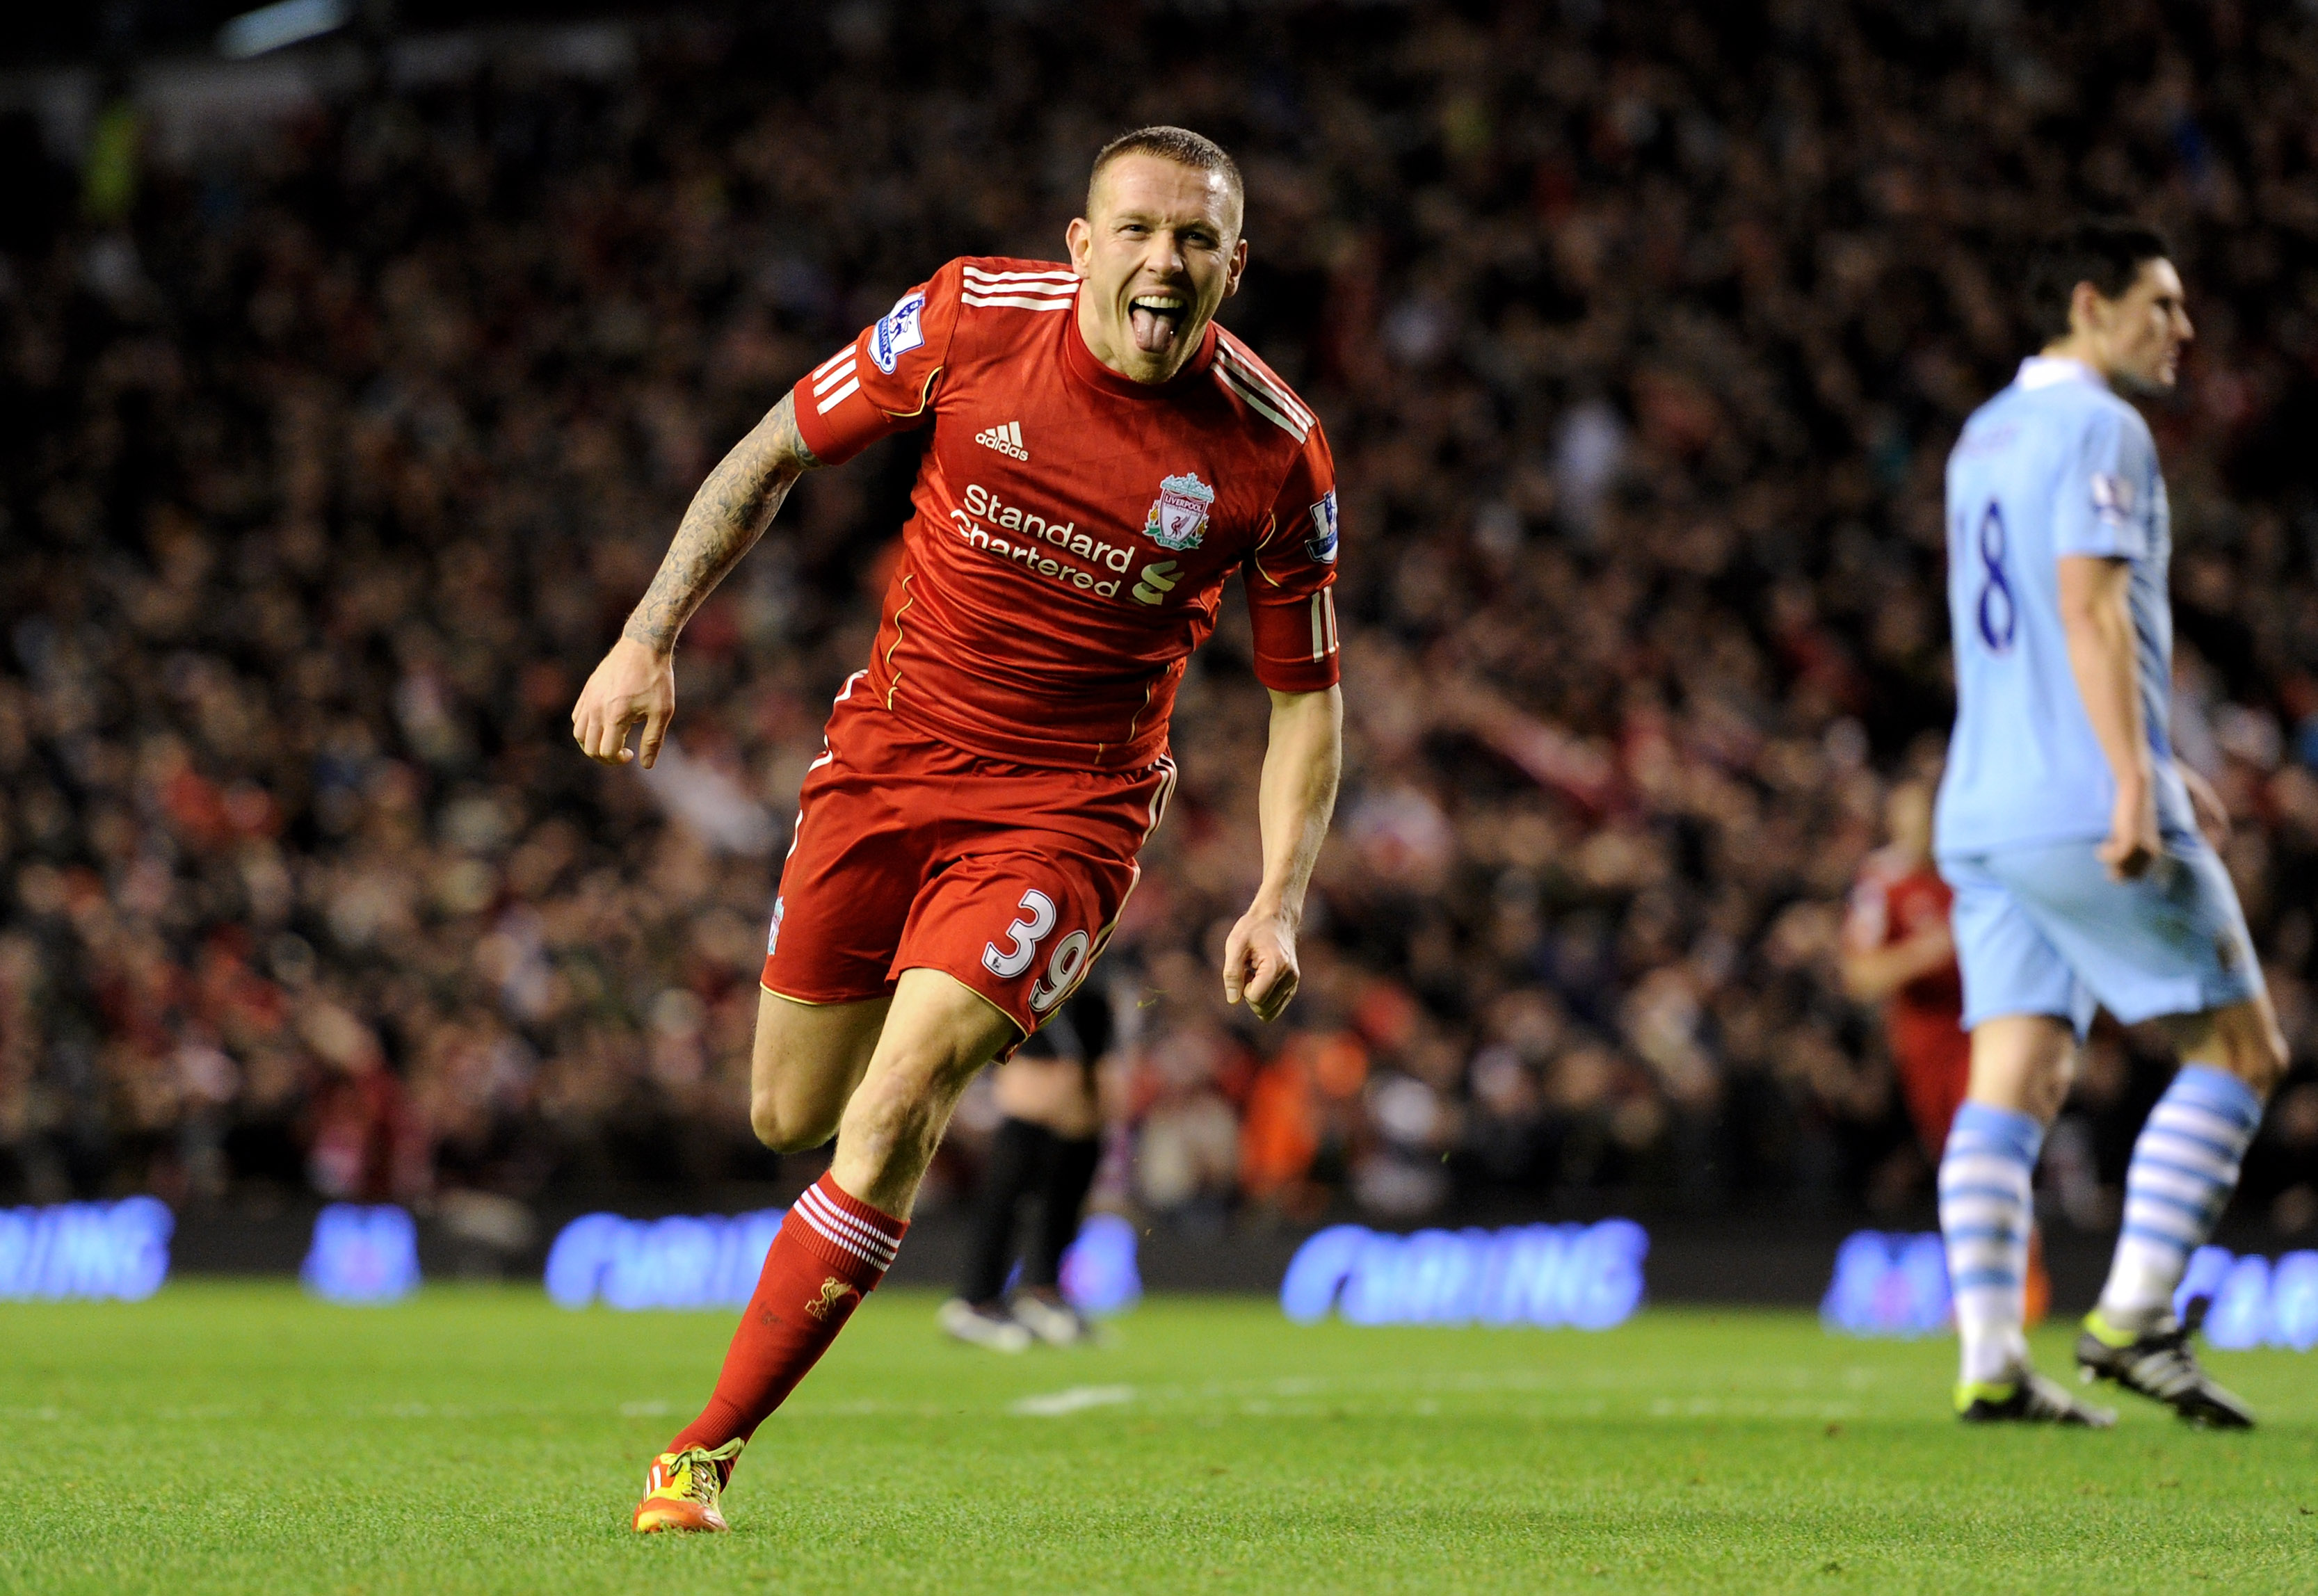 John Arne Riise reveals his side of the story about the